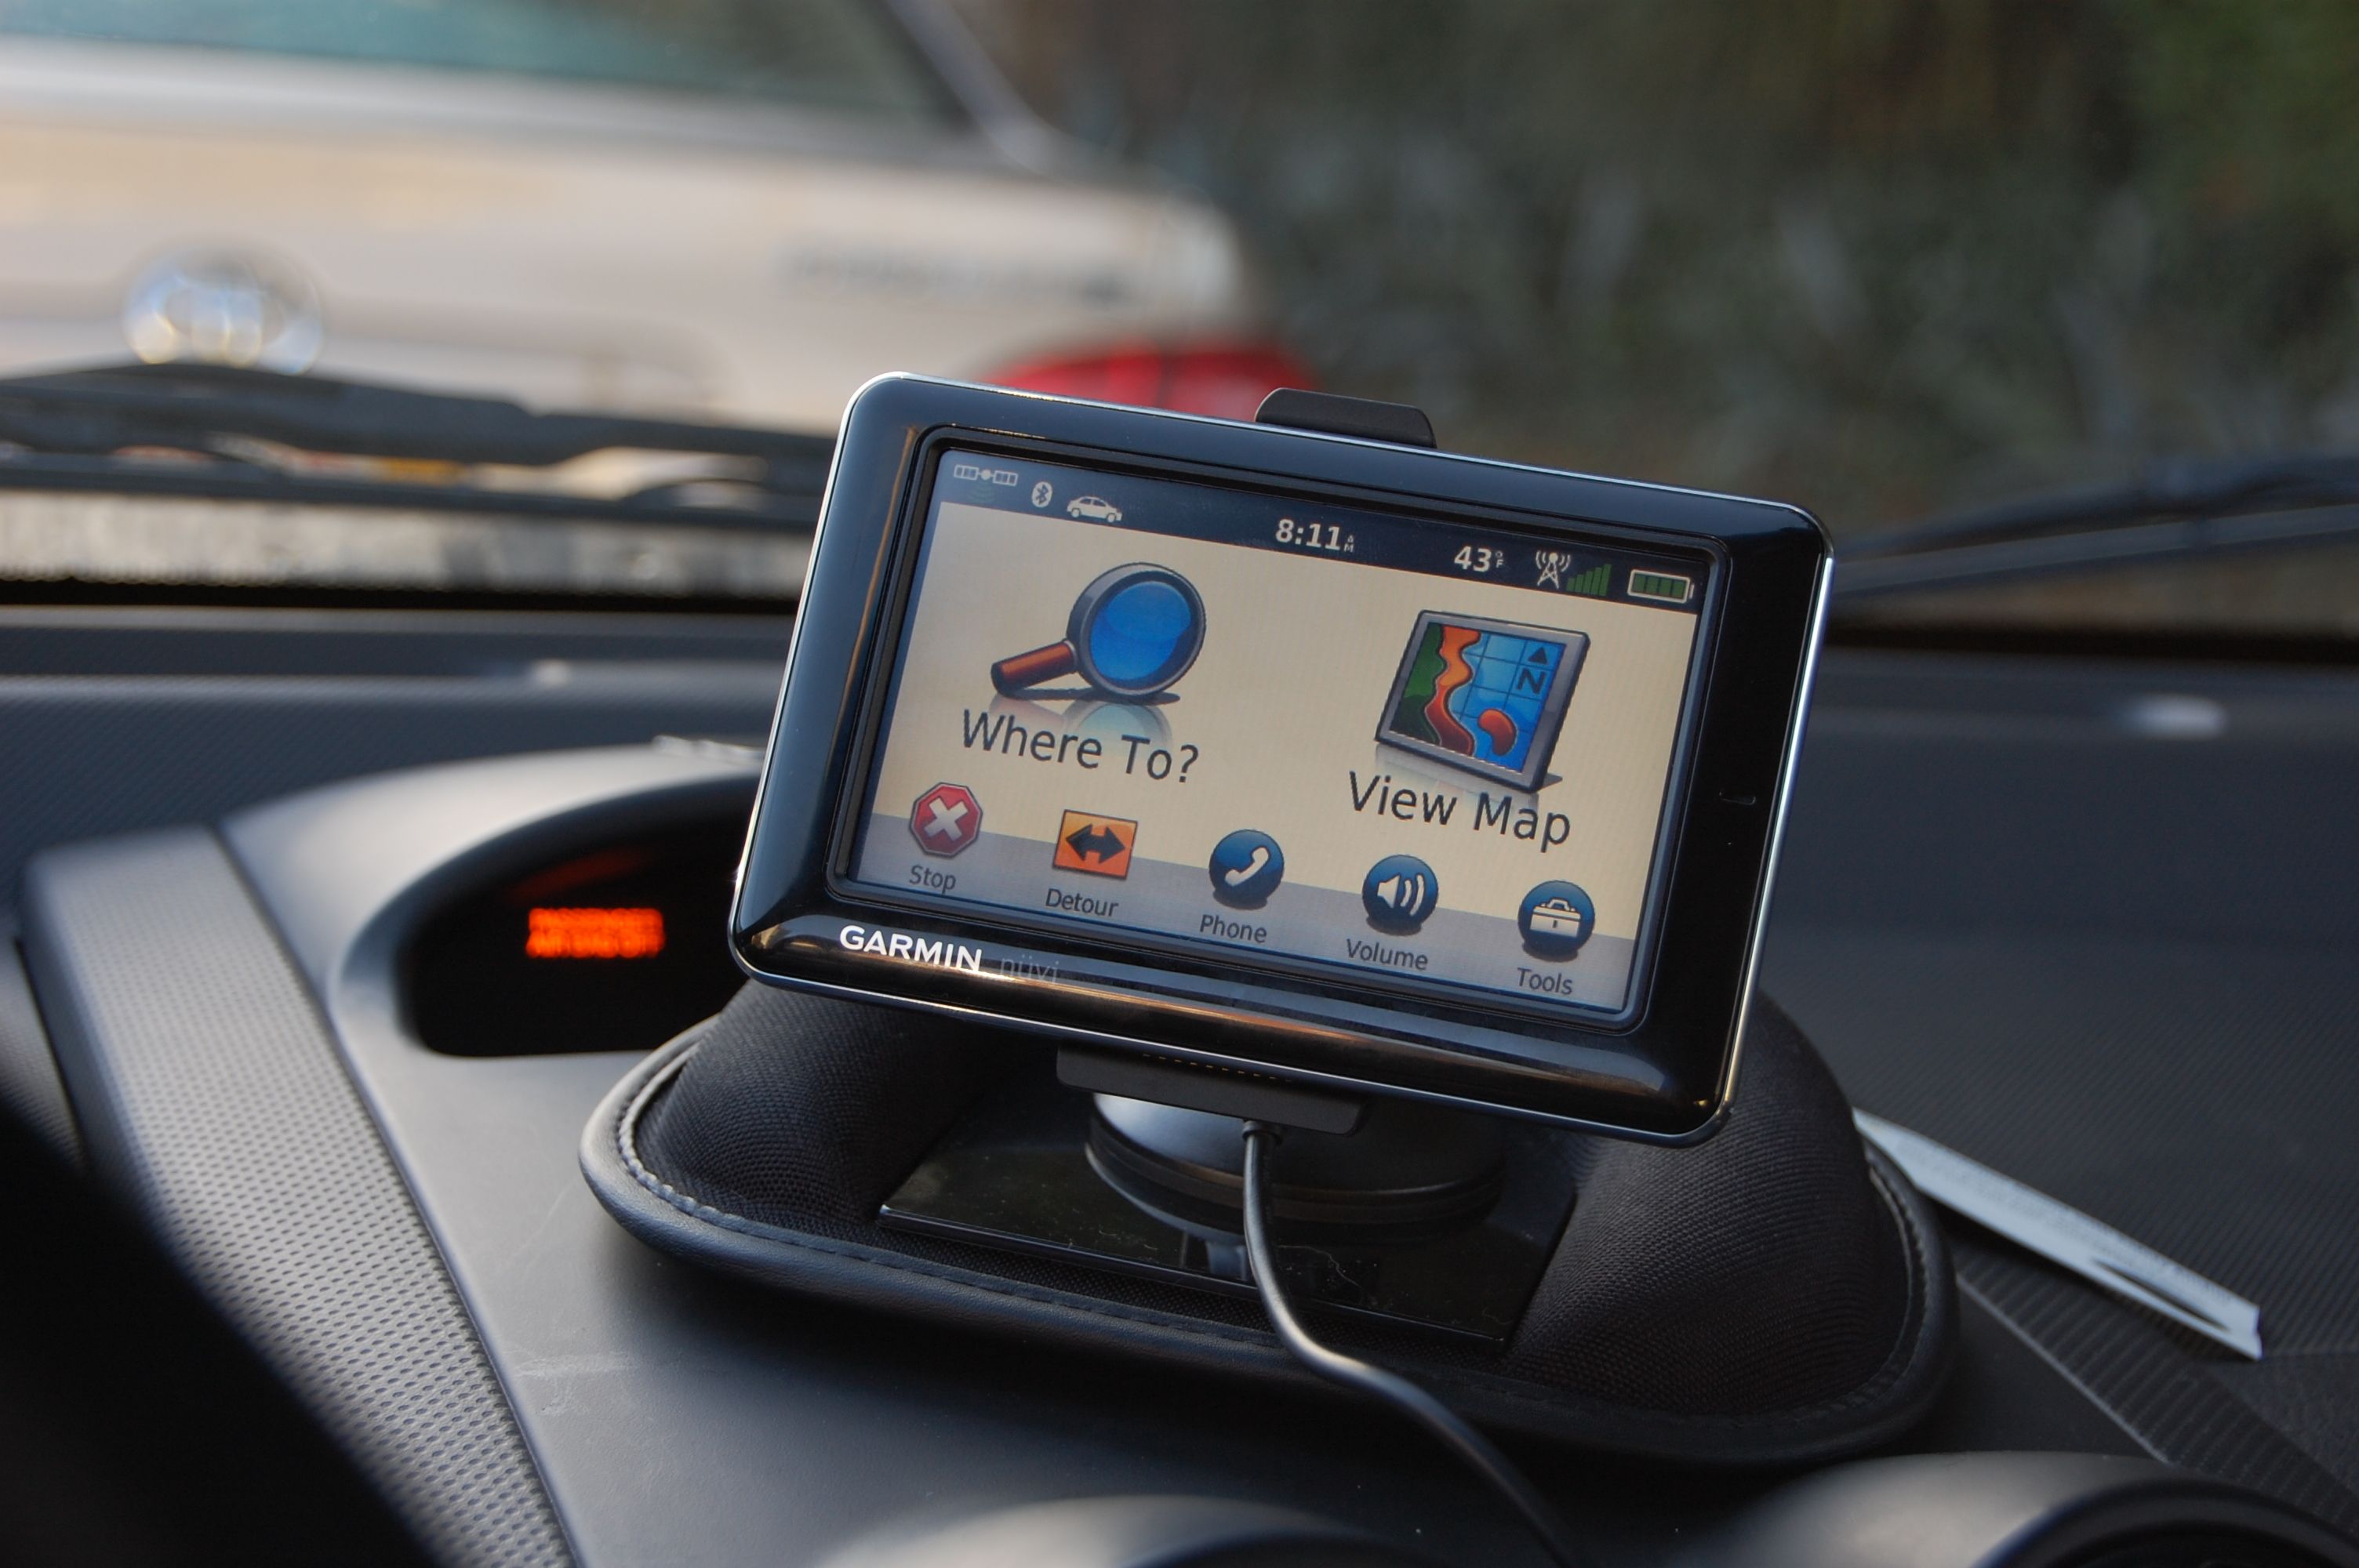 Garmin Nuvi attached to friction mount